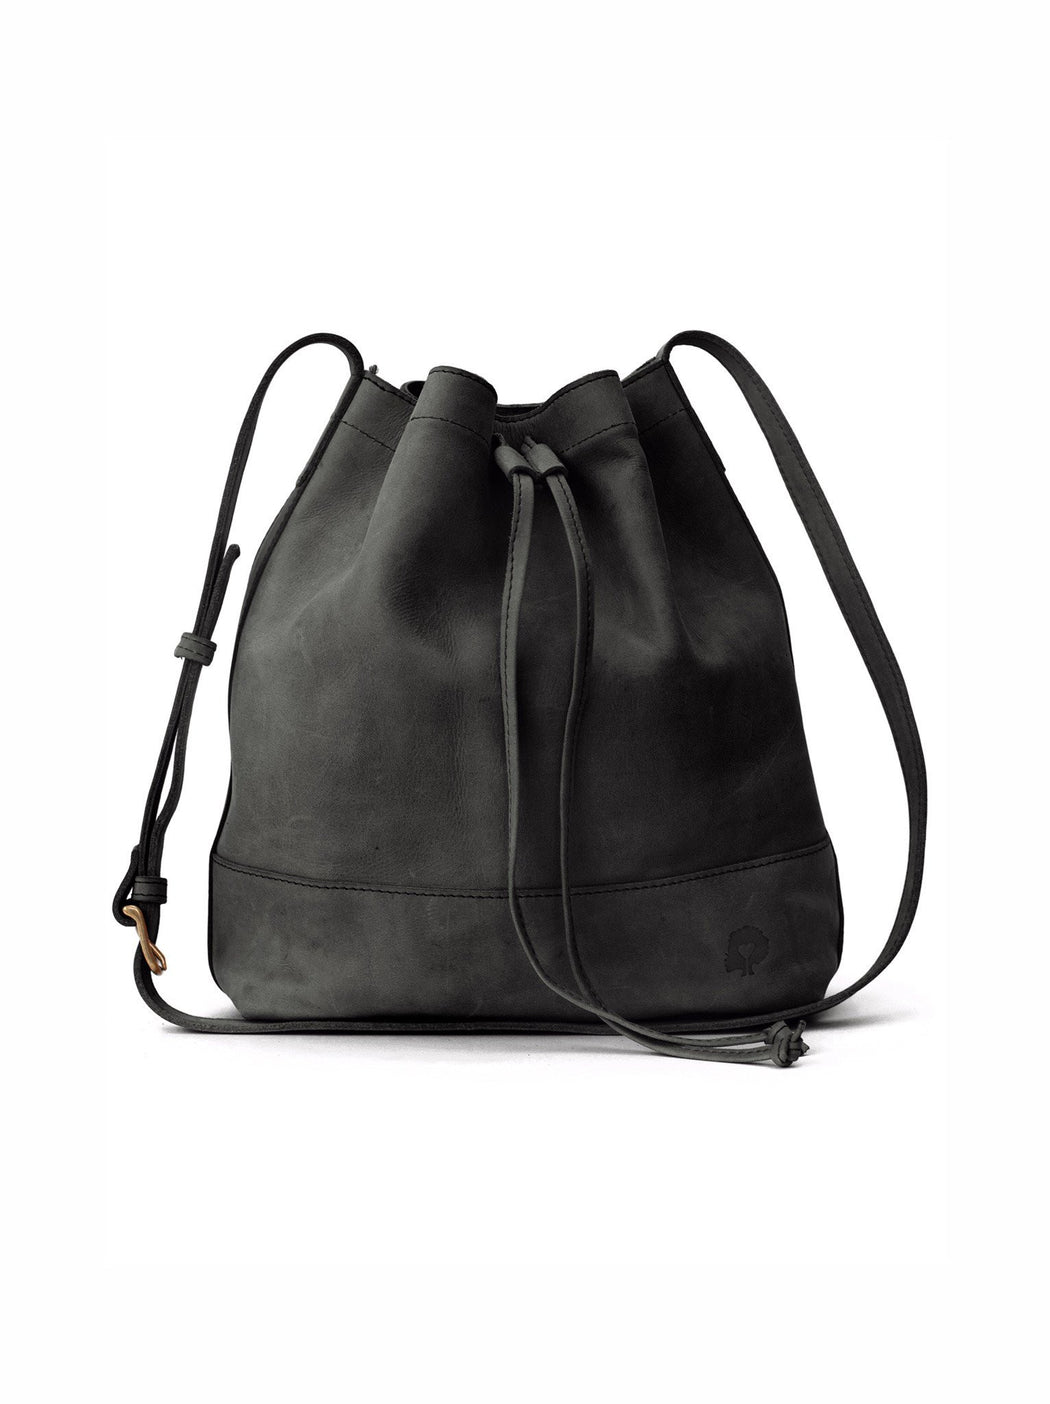 Tadesse Bucket Bag, fashionABLE - Gingerly Witty